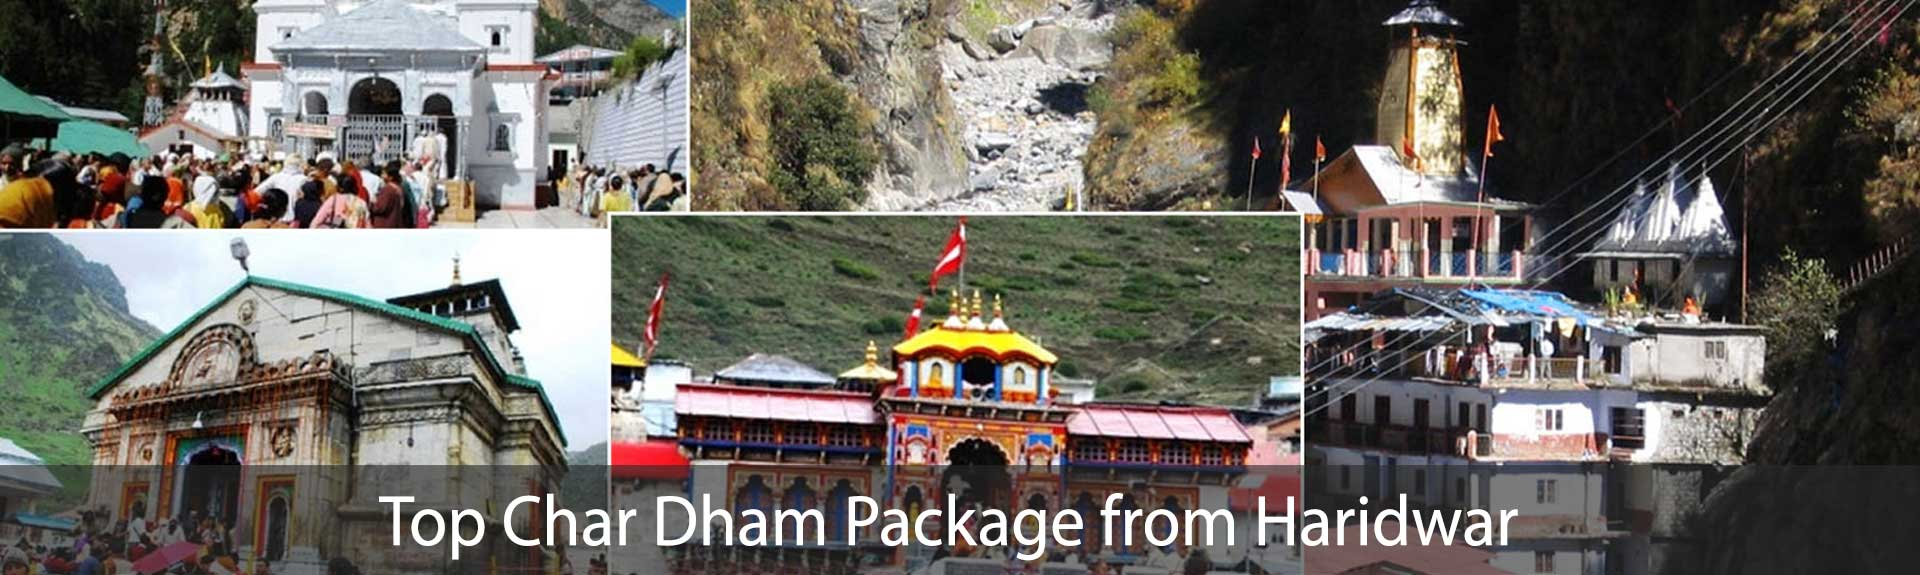 Top Char Dham Package from Haridwar